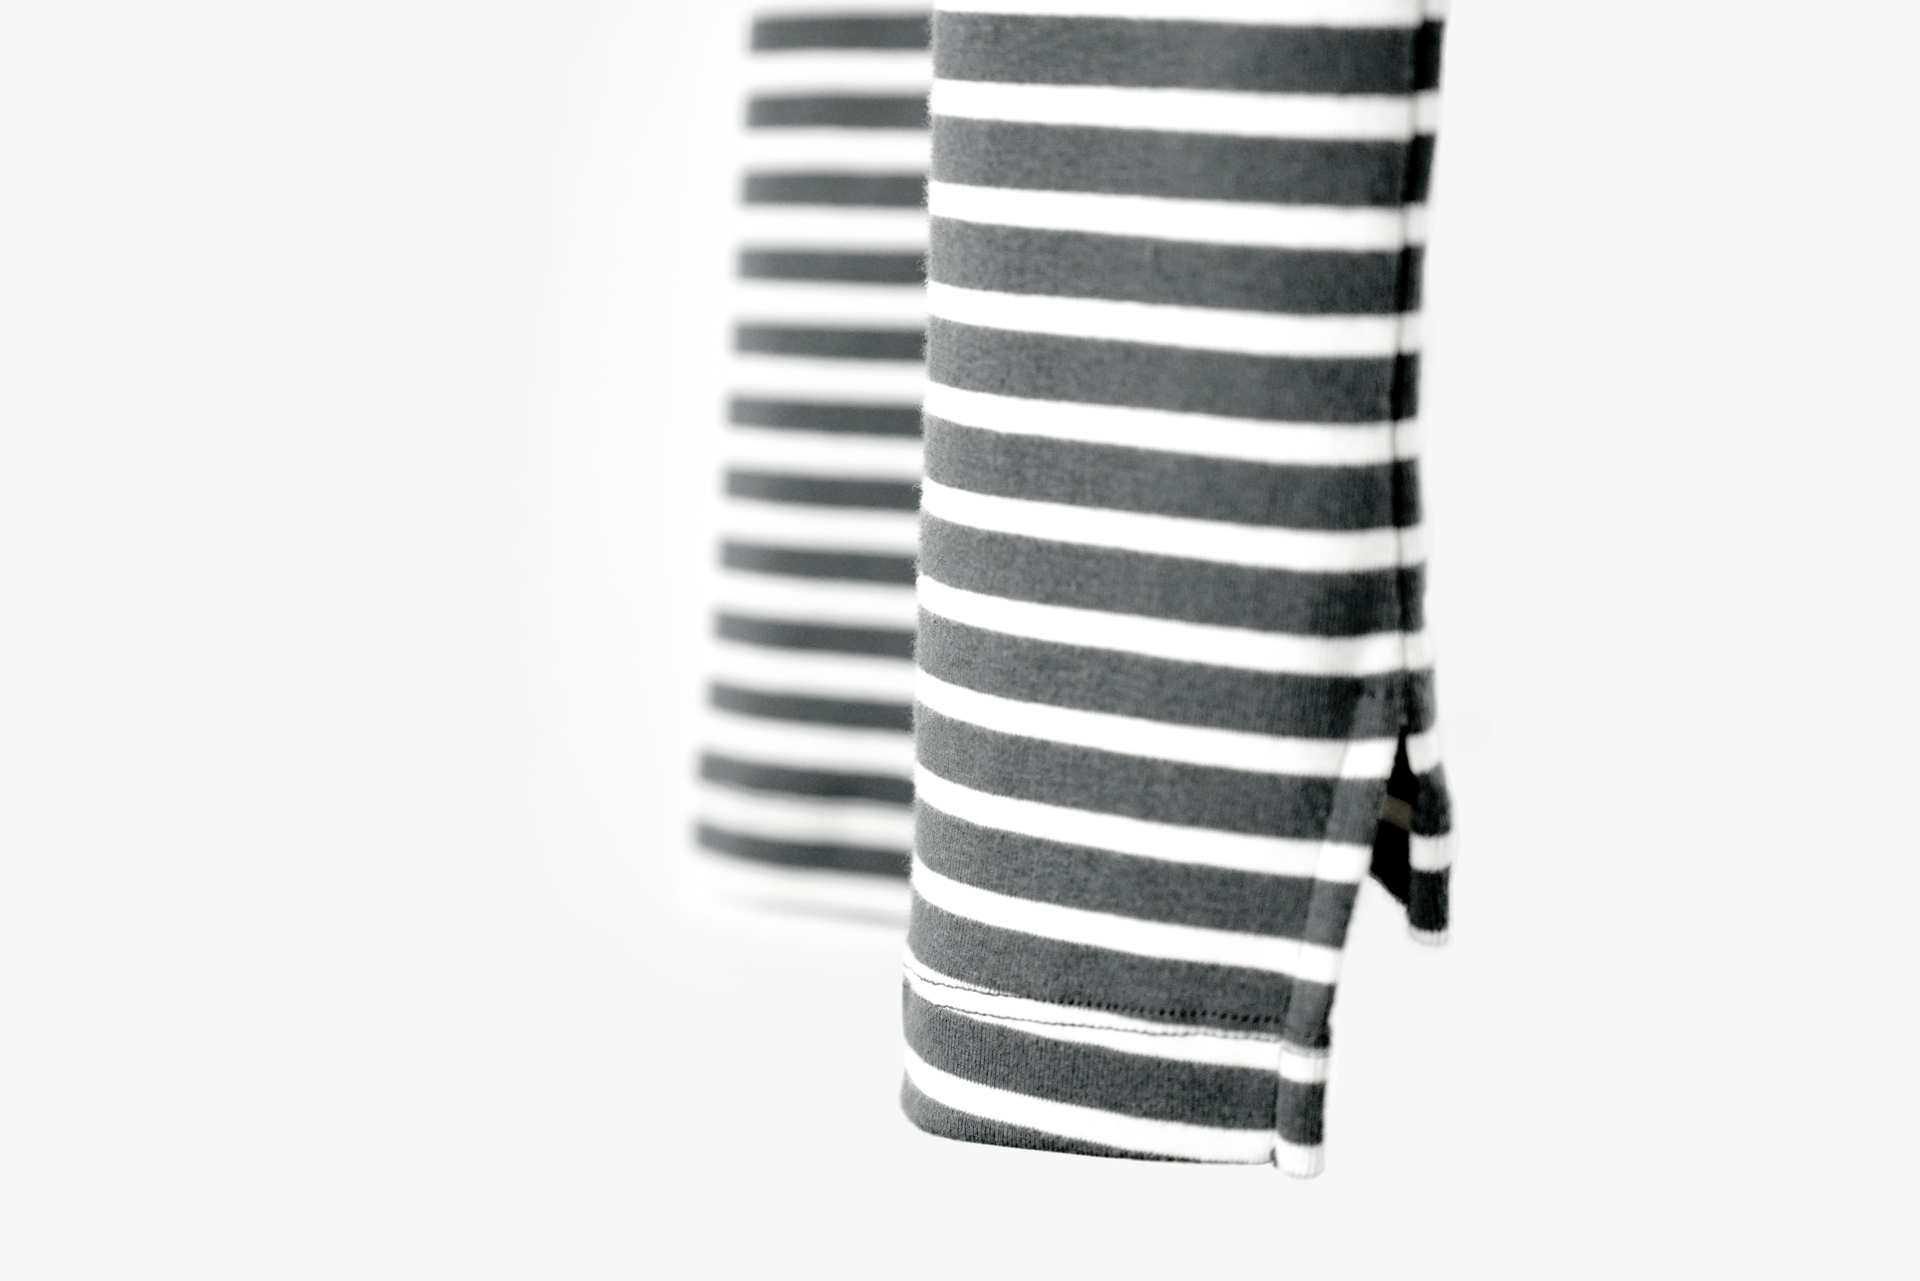 Organic, stripes, close-up, details, premium, sustainable, longevity